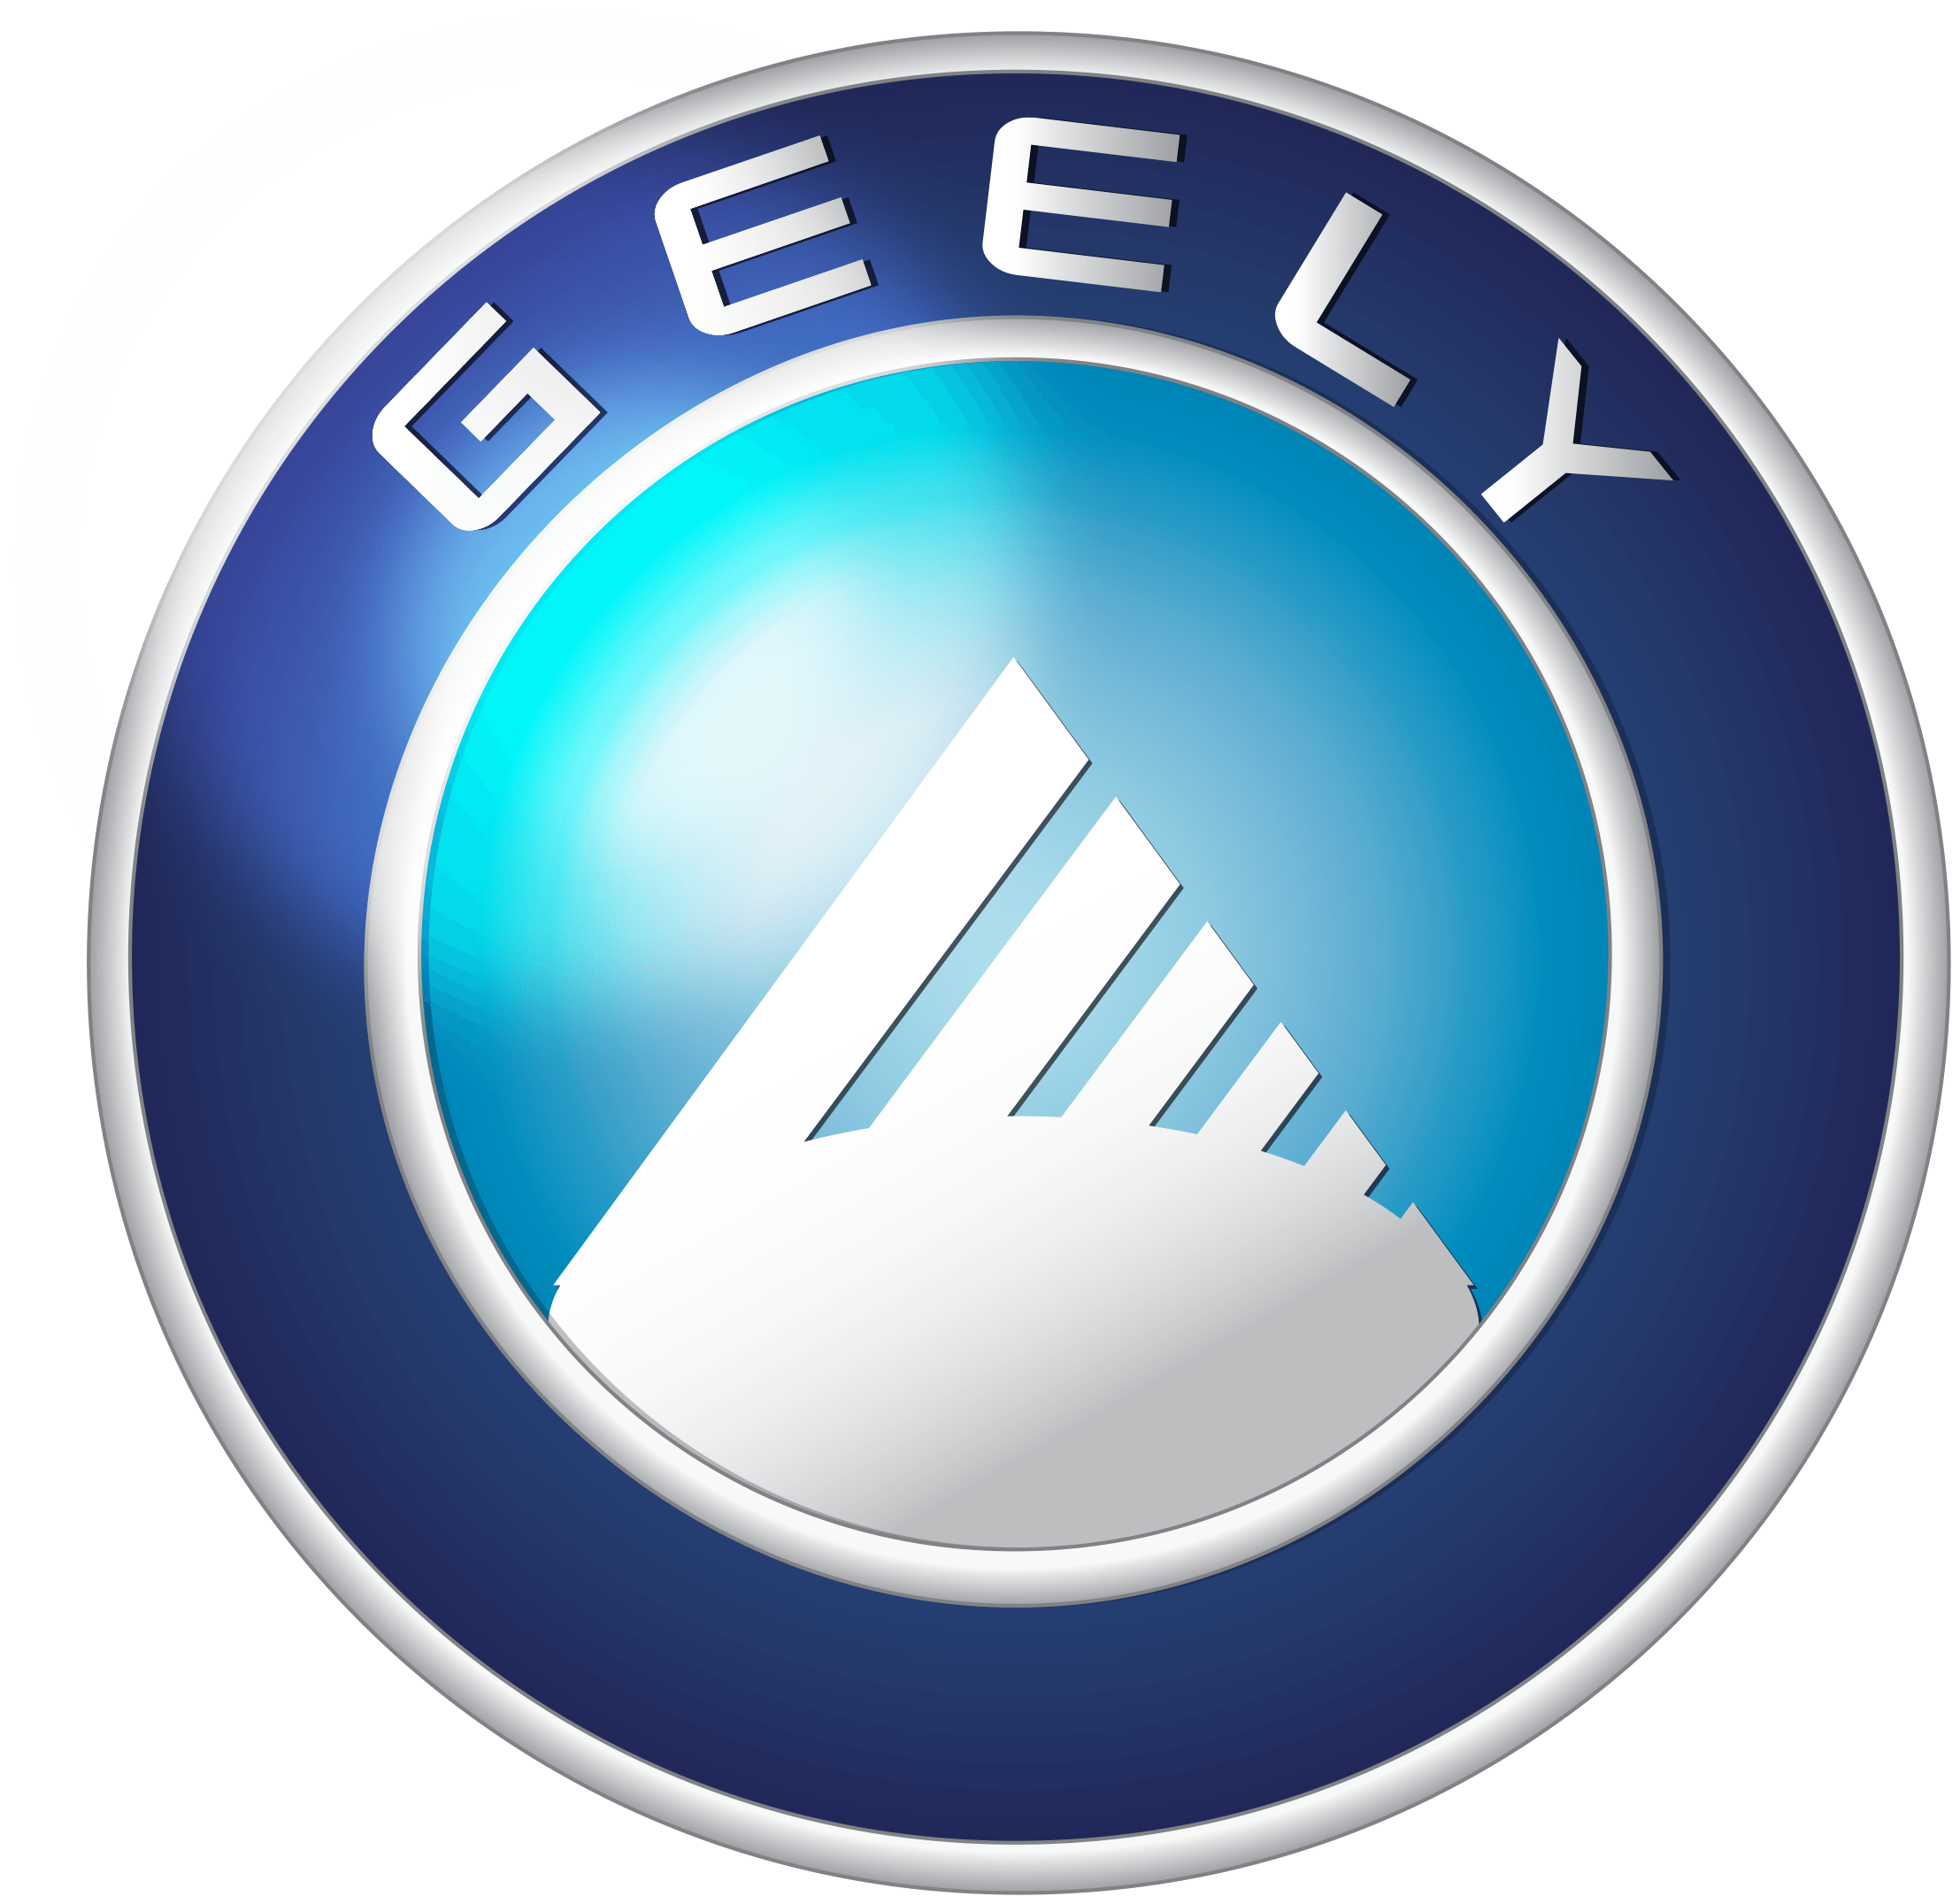 Geely is a Chinese multinational automotive manufacturing company headquartered in Hangzhou